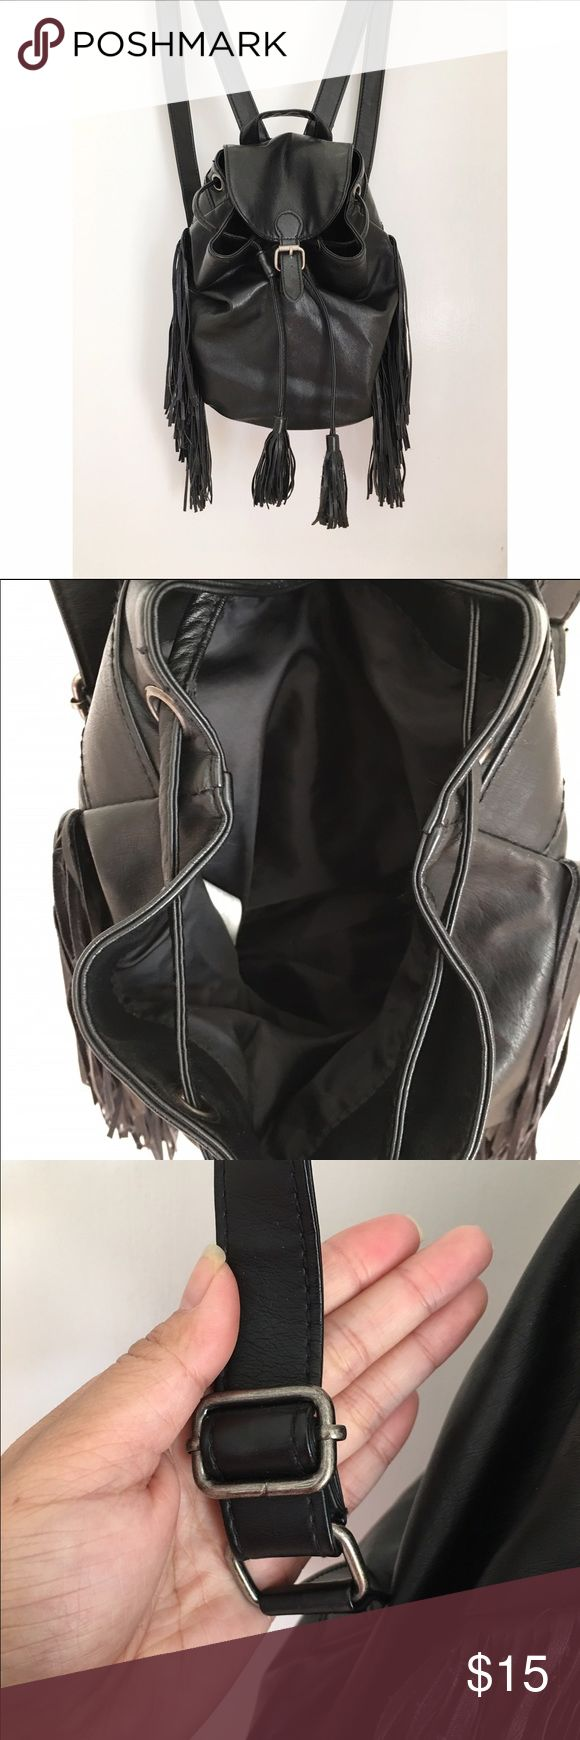 Mini leather backpack A music festival staple ! Vegan leather mini backpack with tarnished silver accents and fringe details throughout . Worn out a handful of times but still like new . No stains or flaws Abercrombie & Fitch Bags Backpacks